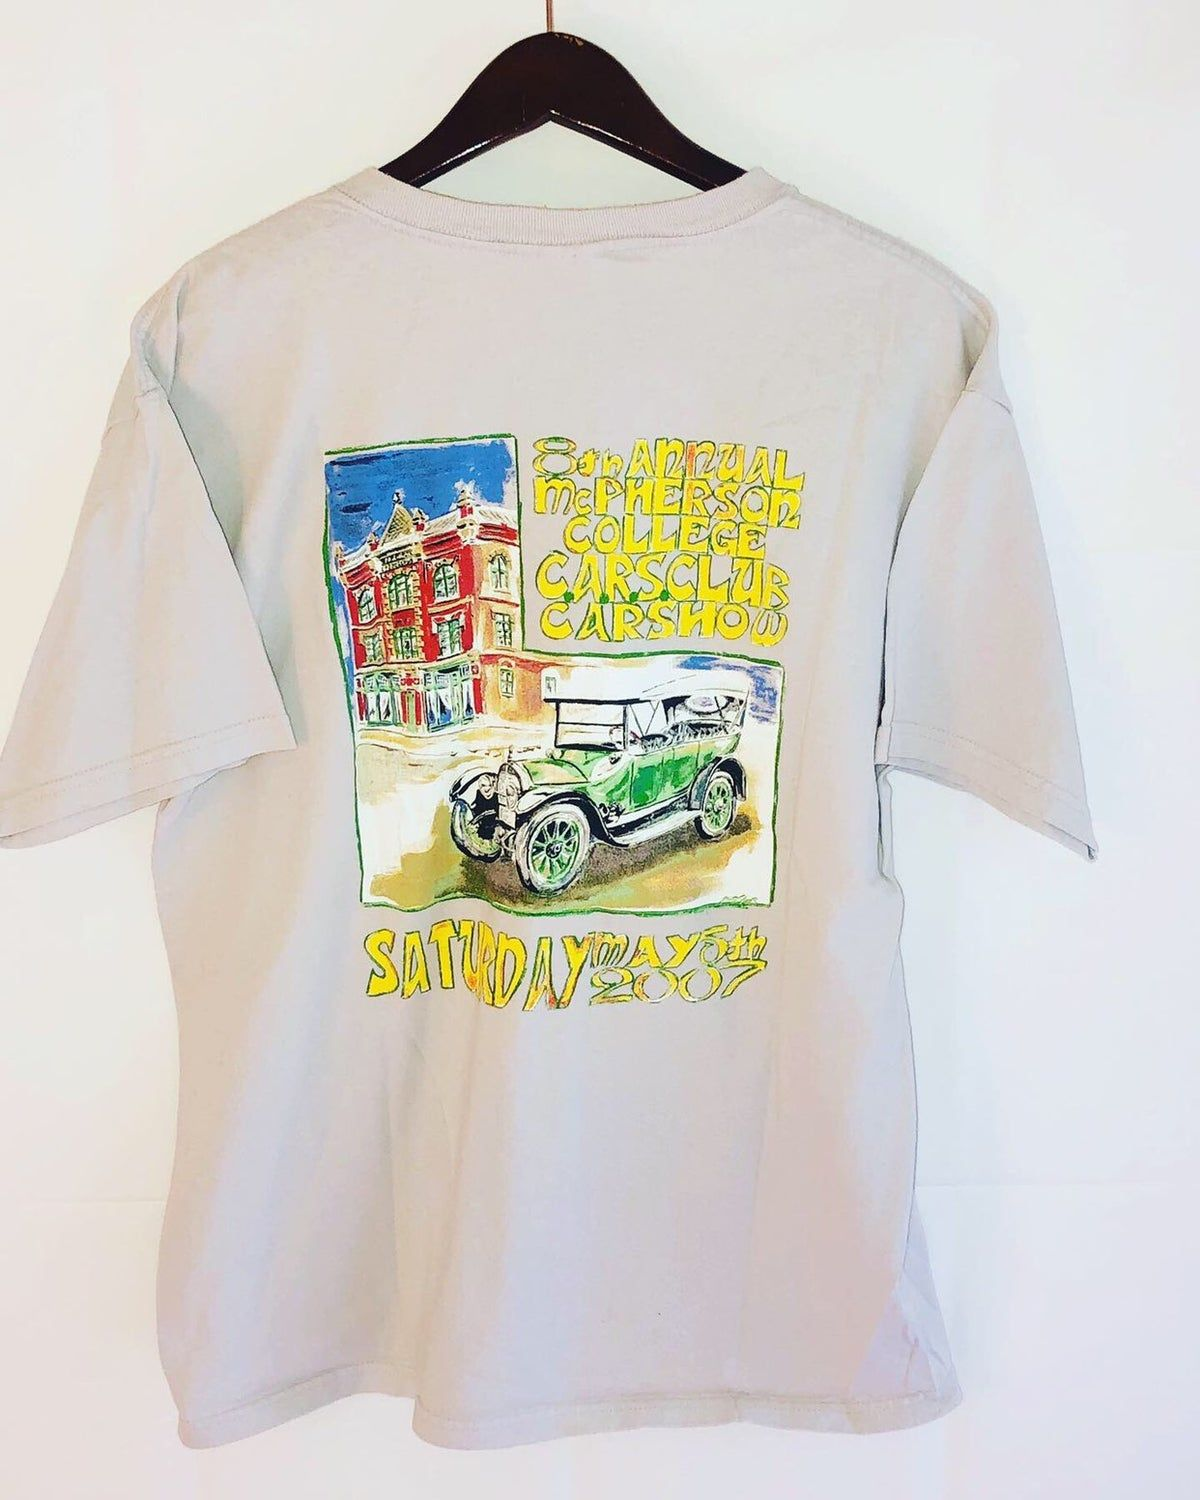 07 Classic Car Show Pocket Tee Large